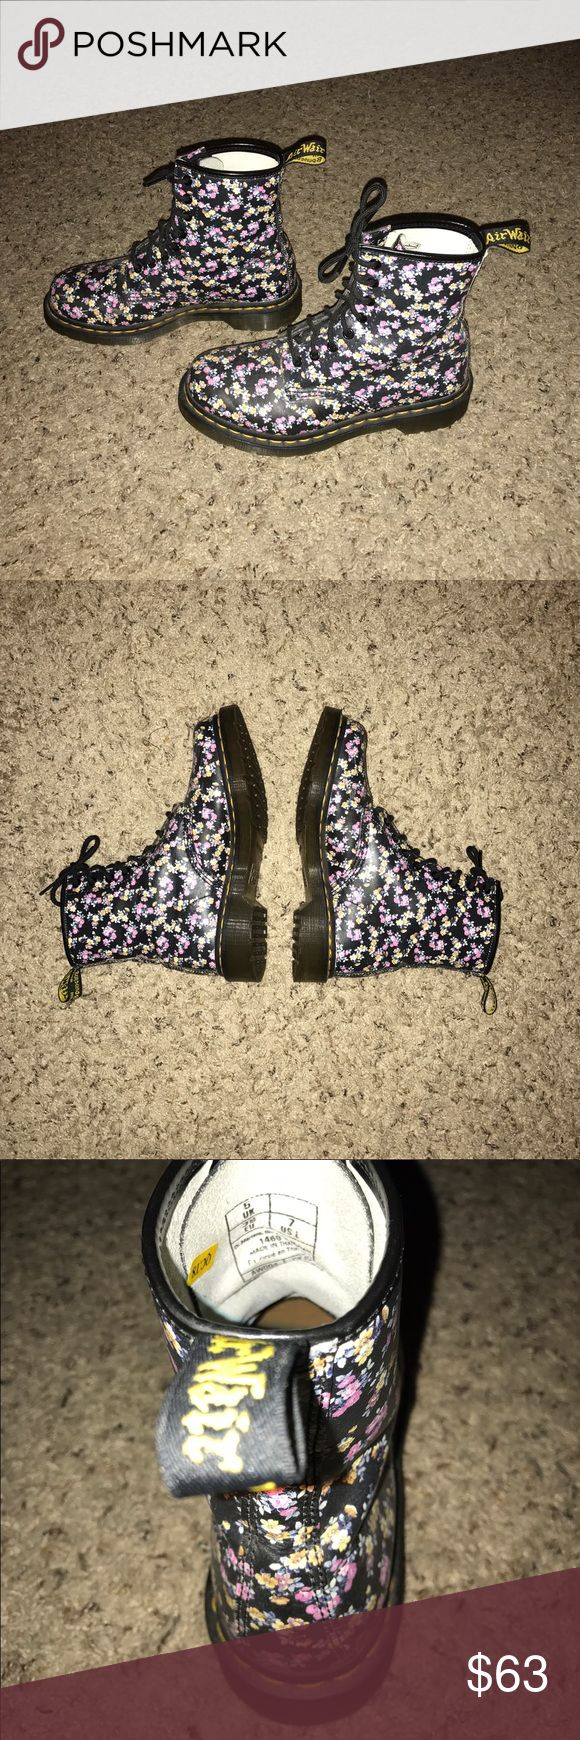 Floral Doc Martens Floral Doc Martens in a size 7 (fit me and I'm a 7.5). I love them, I just don't eat them like they deserve to be worn. There are a few minor scuffs, other than that, they're in great condition and have only been worn a few times. I listed them as Urban Outfitters for visibility. Urban Outfitters Shoes